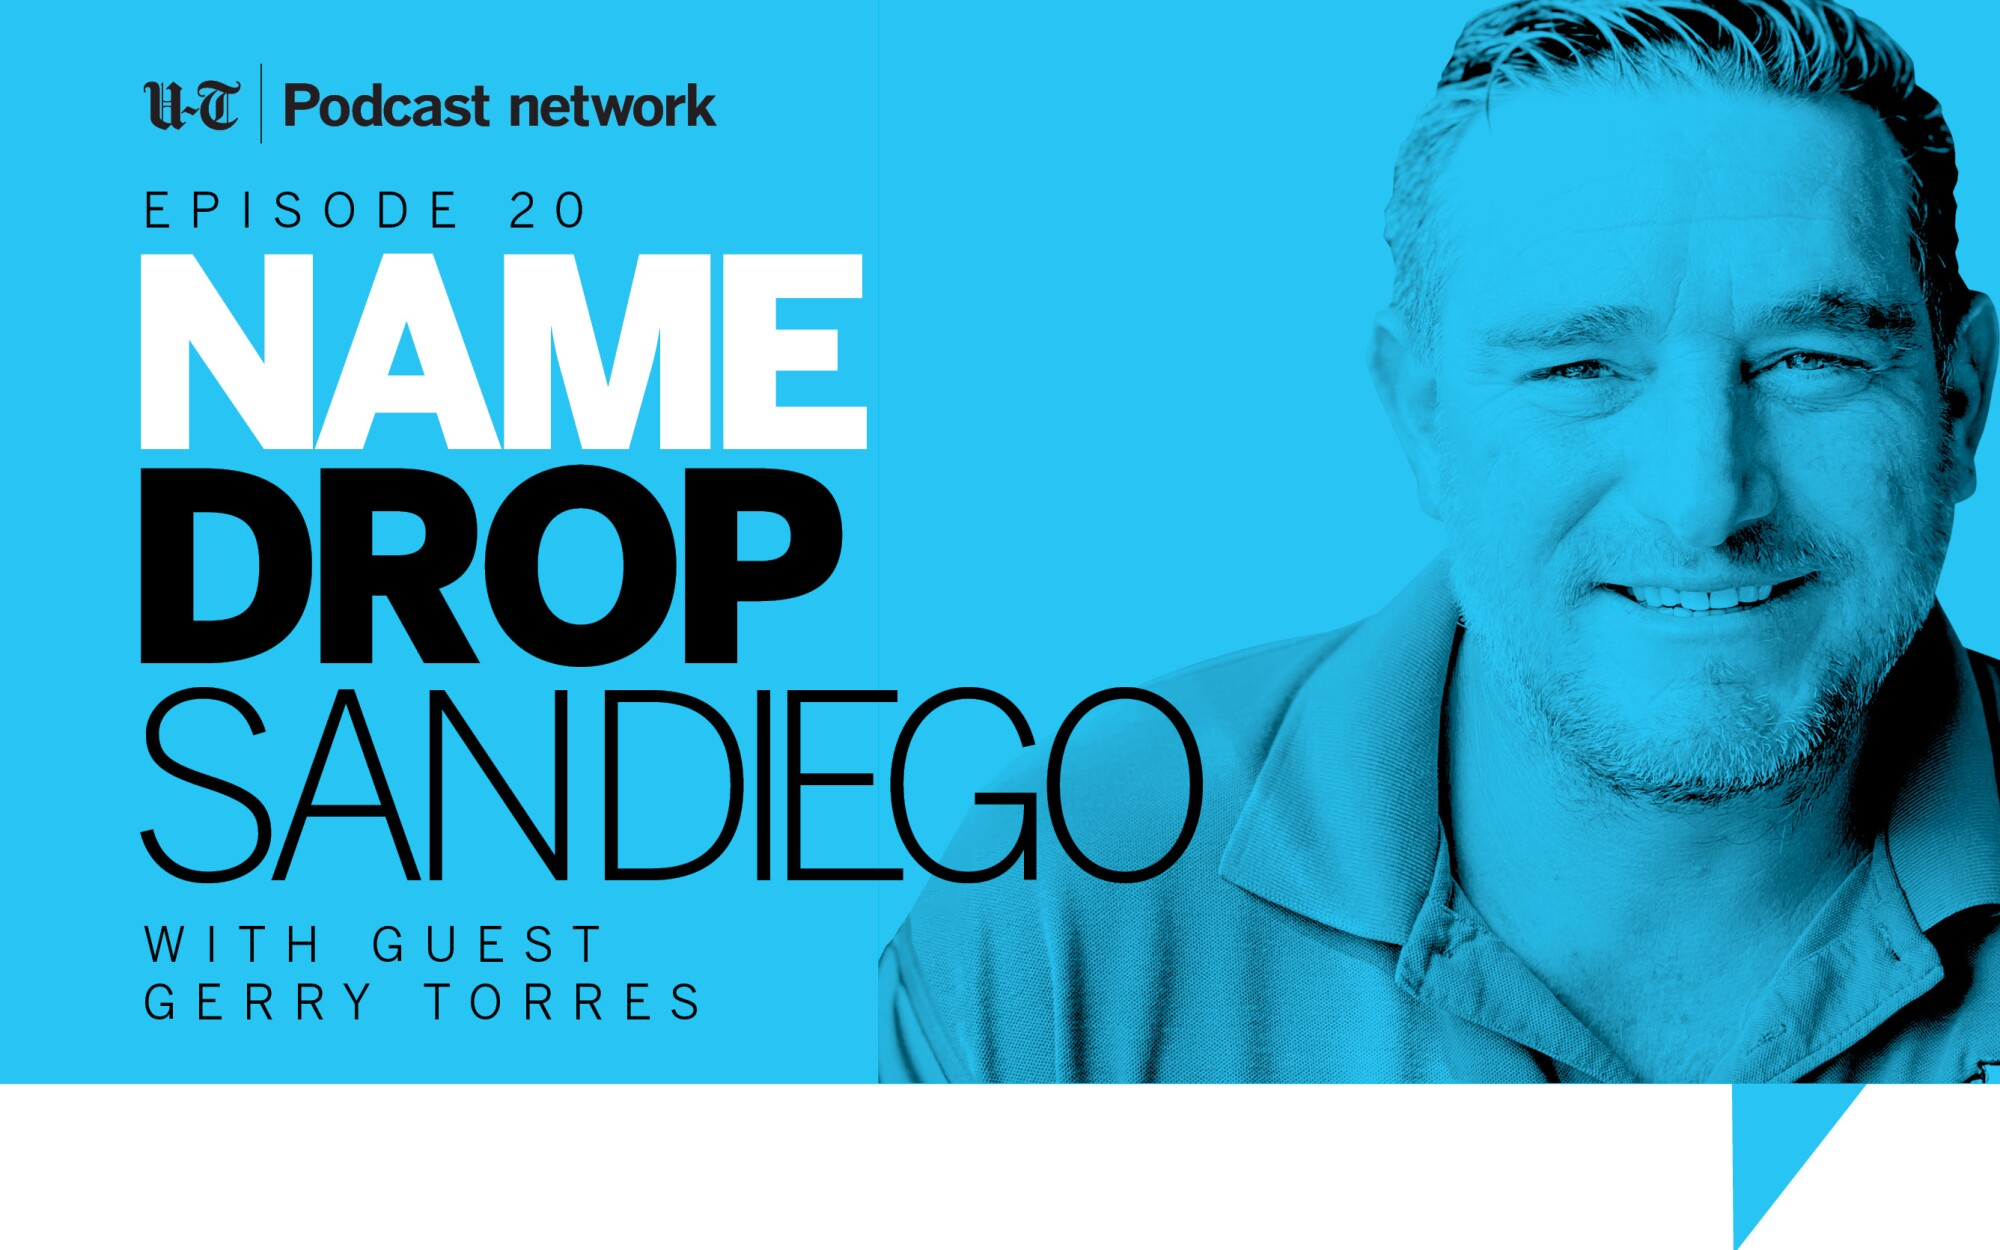 Gerry Torres on Name Drop San Diego